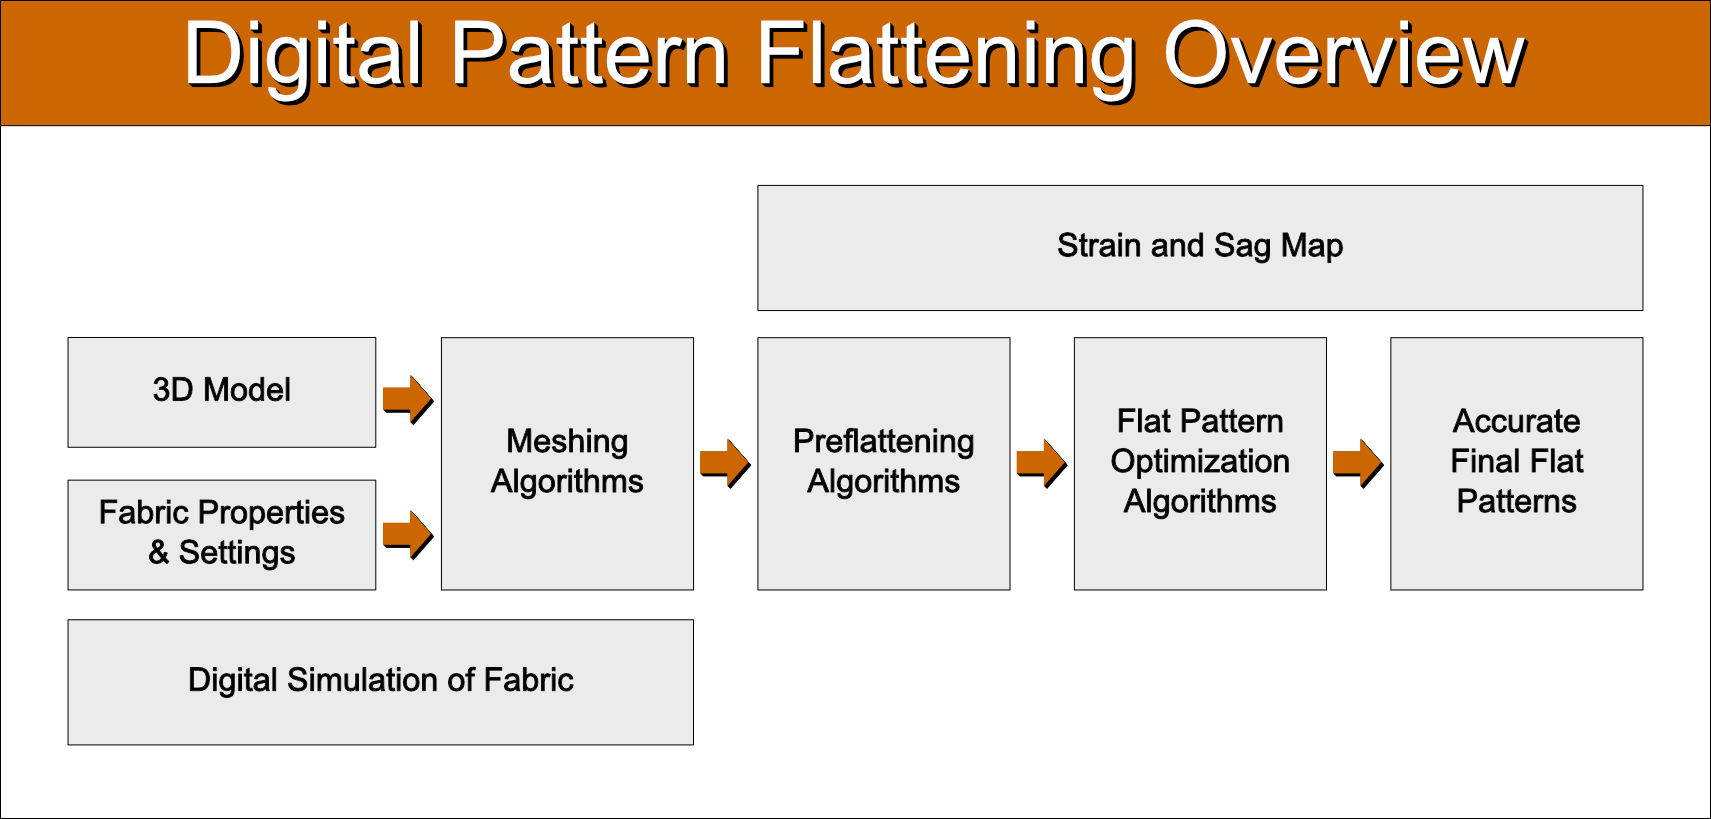 Digital pattern flattening overview.jpg